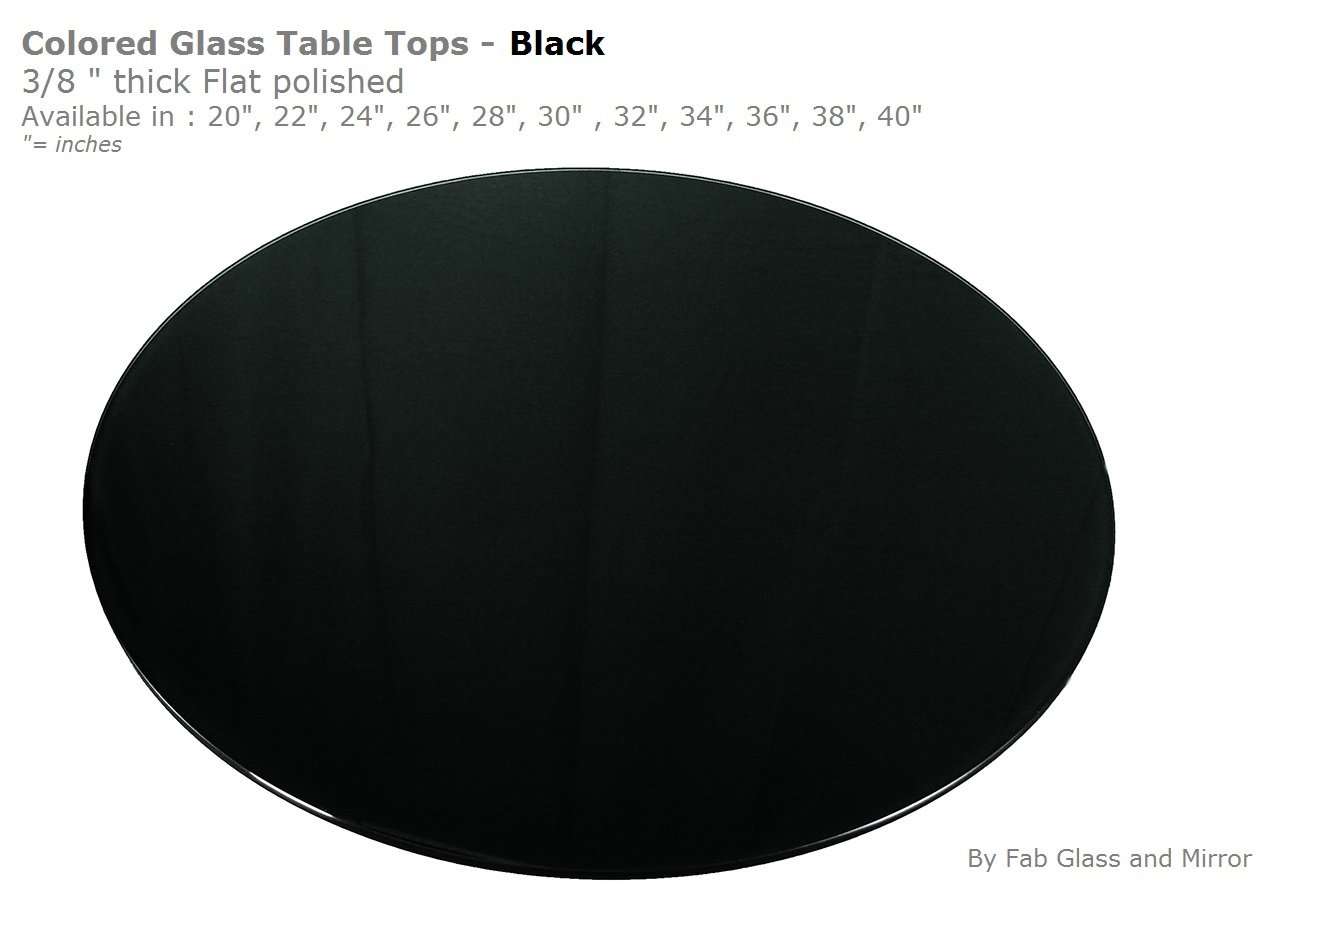 Fab Glass and Mirror 3/8'' Thick Flat Tempered Round Glass Table Top,  20'',  Black